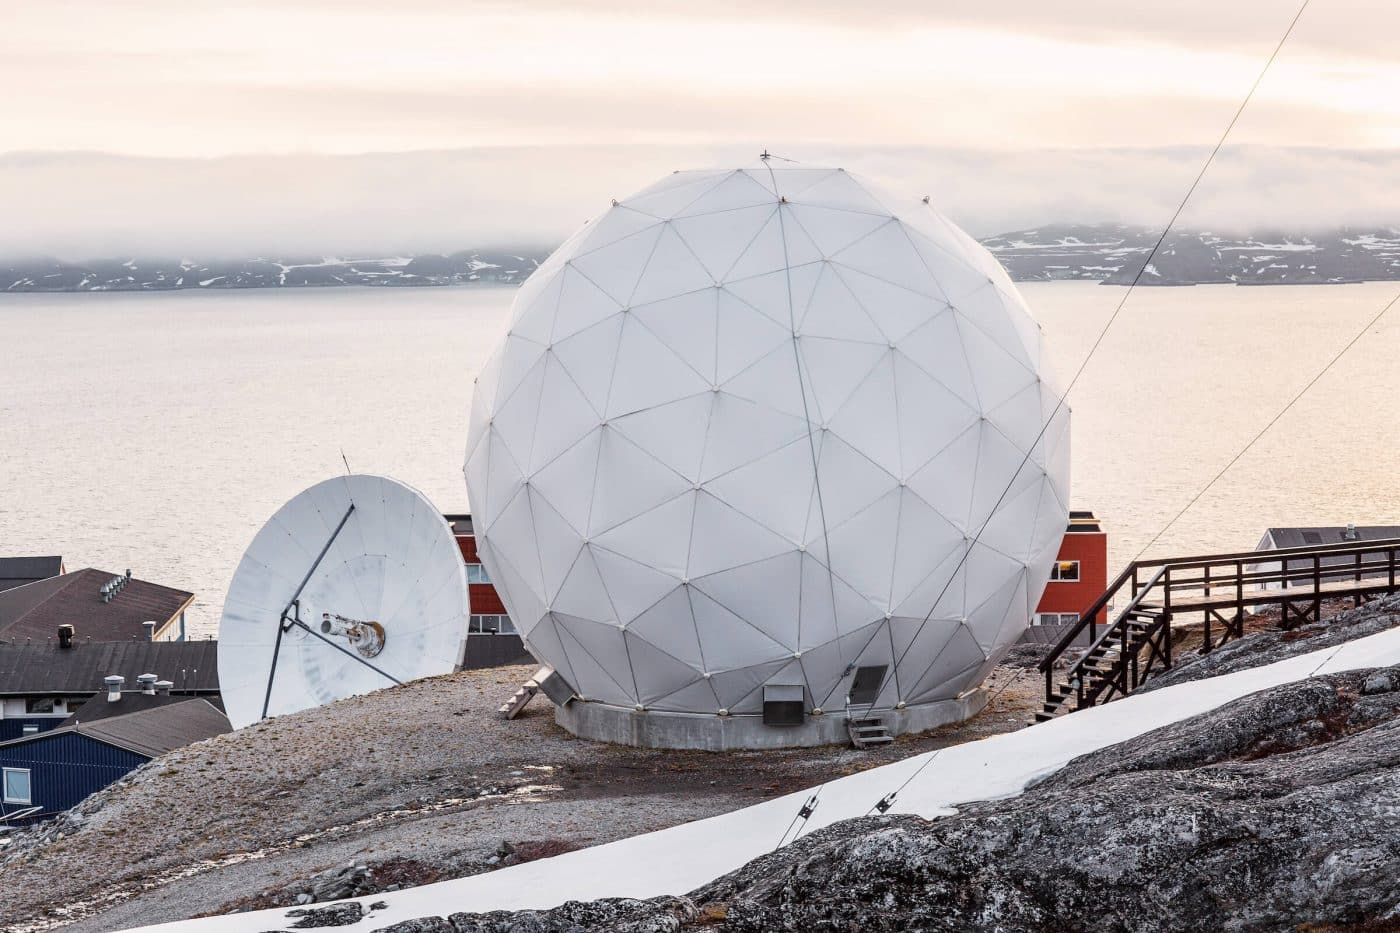 Tele-Post's radome screen with the mountains and sea in the background, in Nuuk. Photo by Filip Gielda